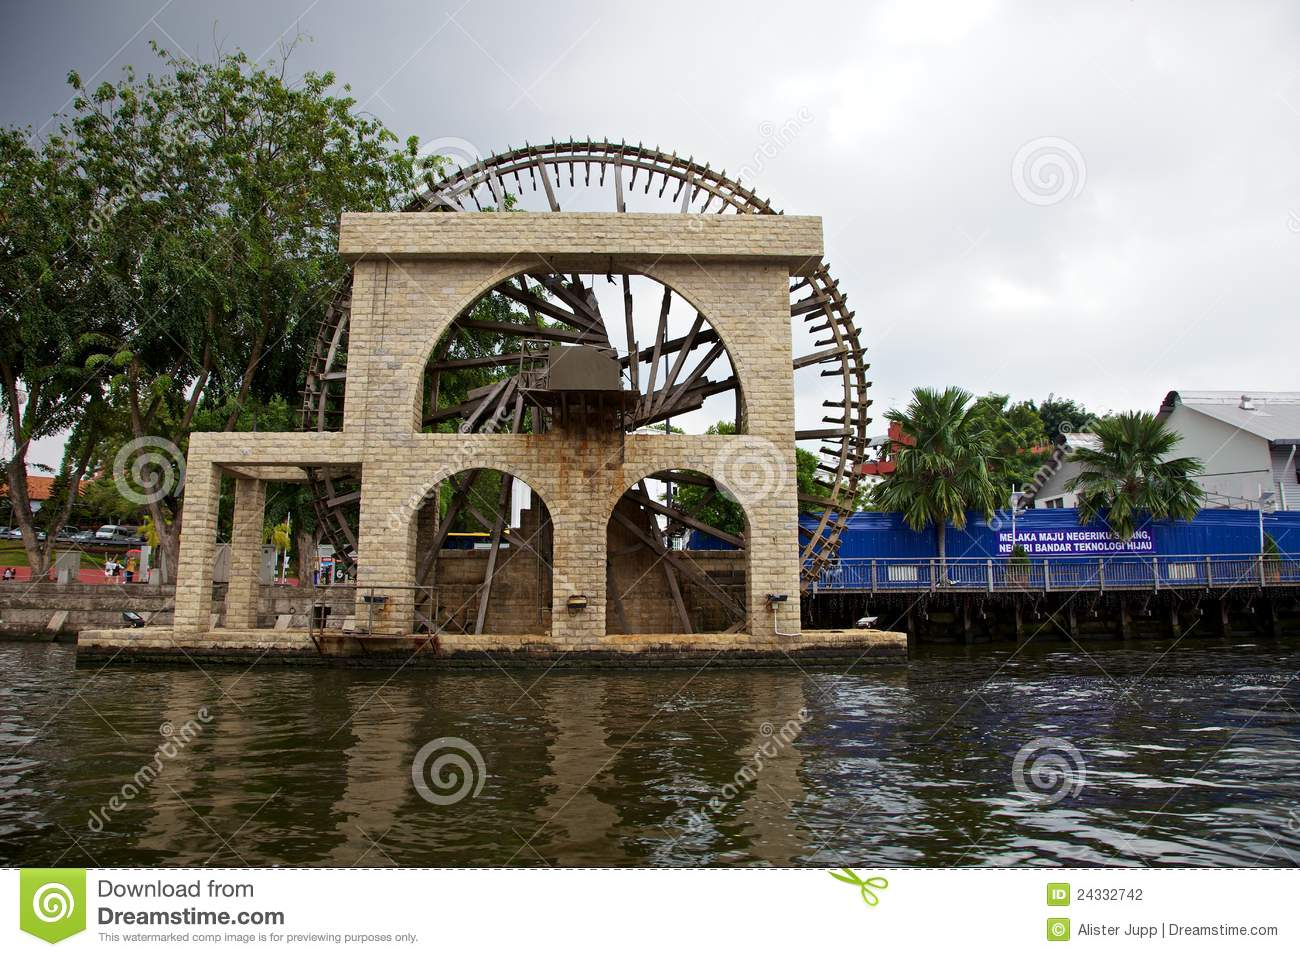 Melaka Malay Sultanate Water Wheel Melaka City, Melaka Water Wheel Stock Photography - Image: 24332742